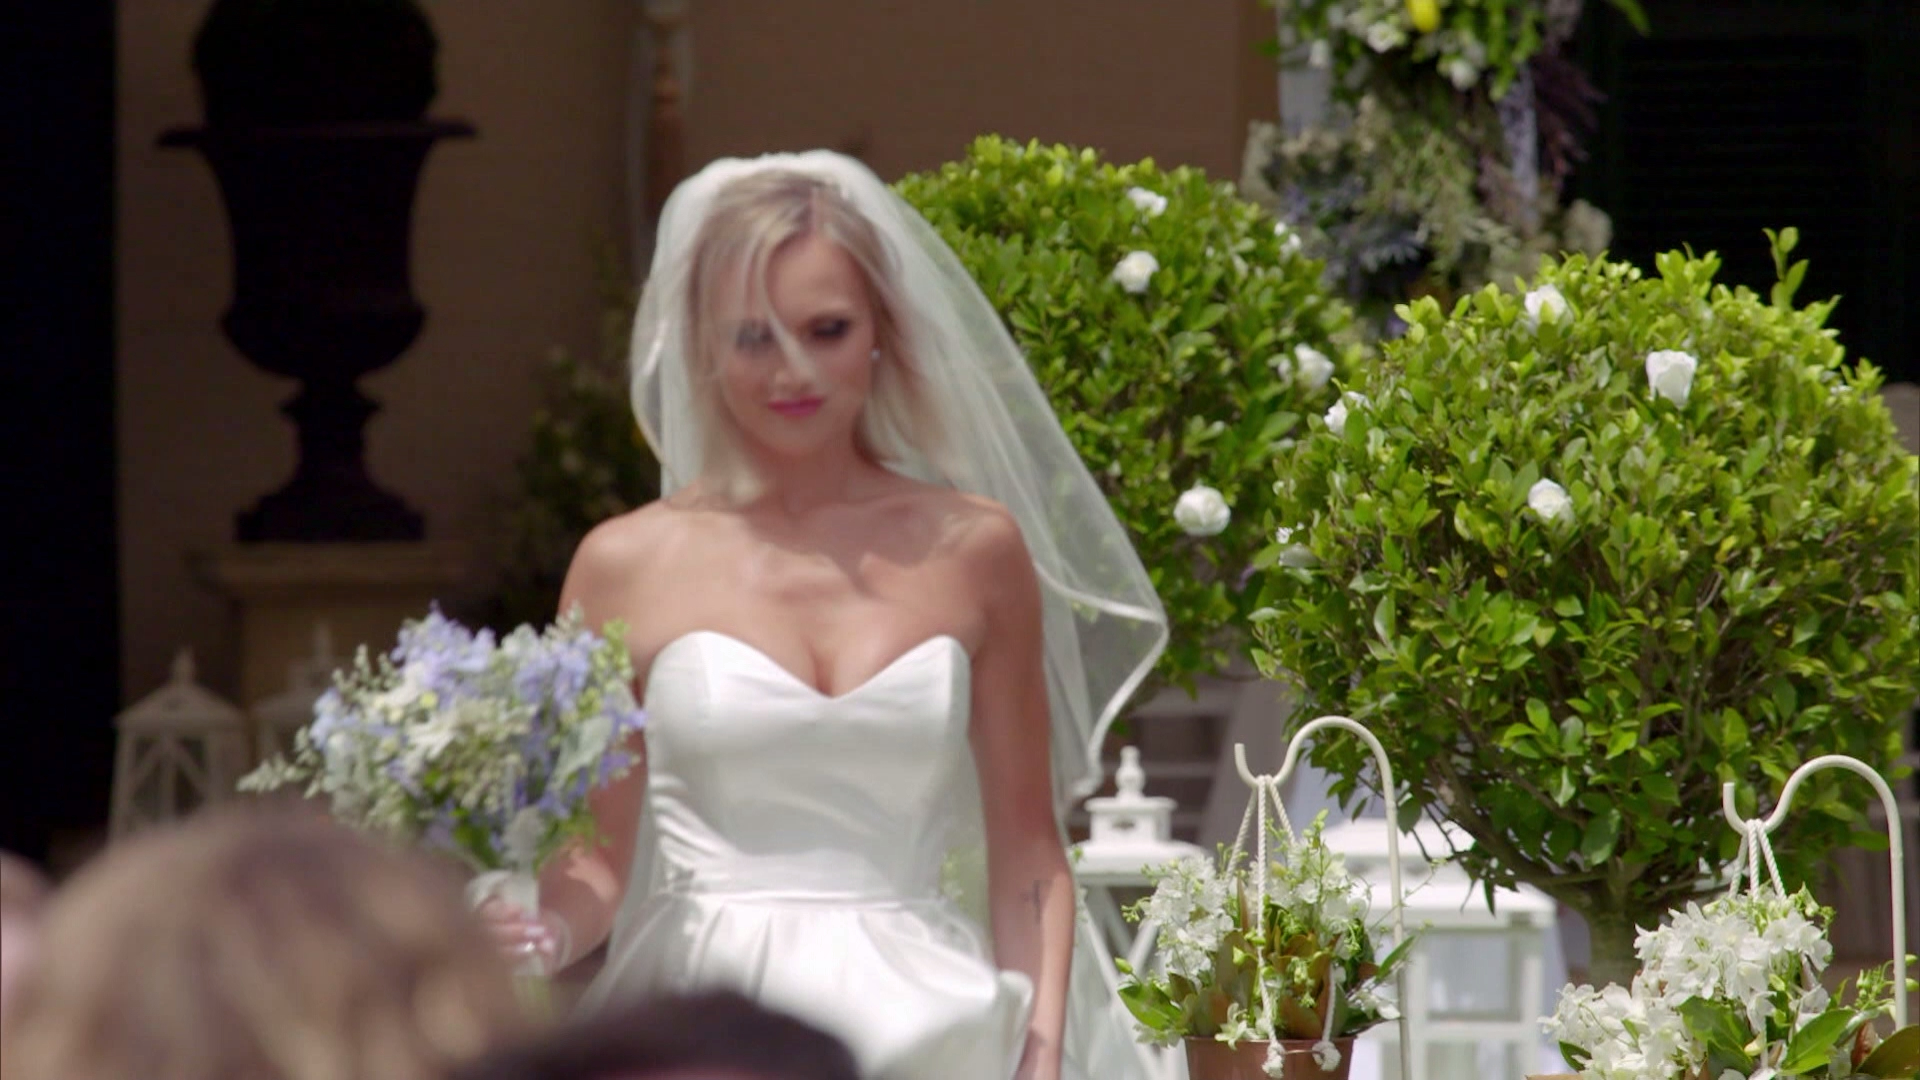 Susie walks herself down the aisle to wed Billy